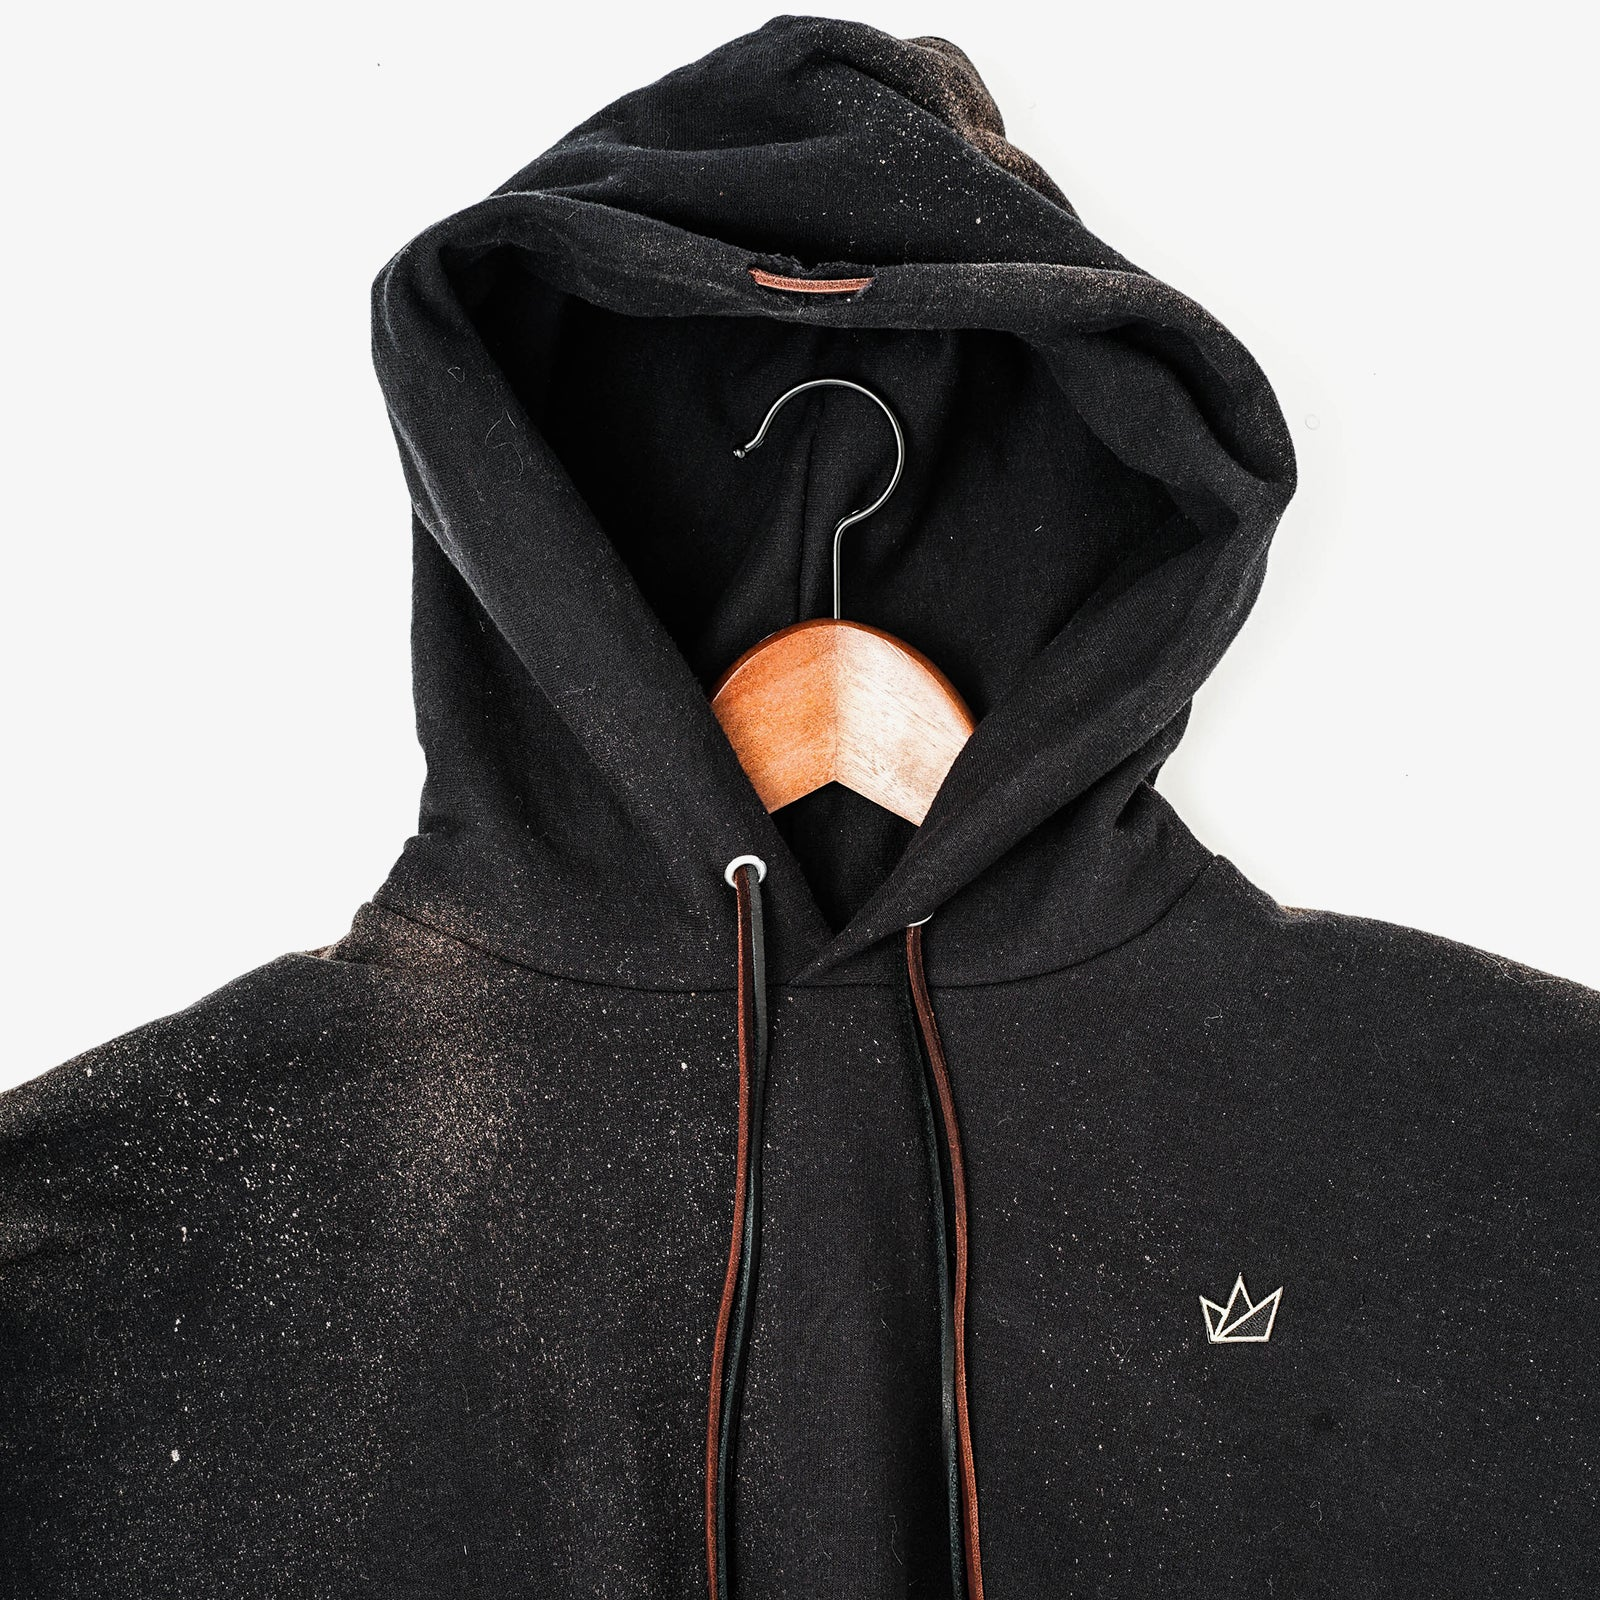 The Jordan Sleeveless Hoodie